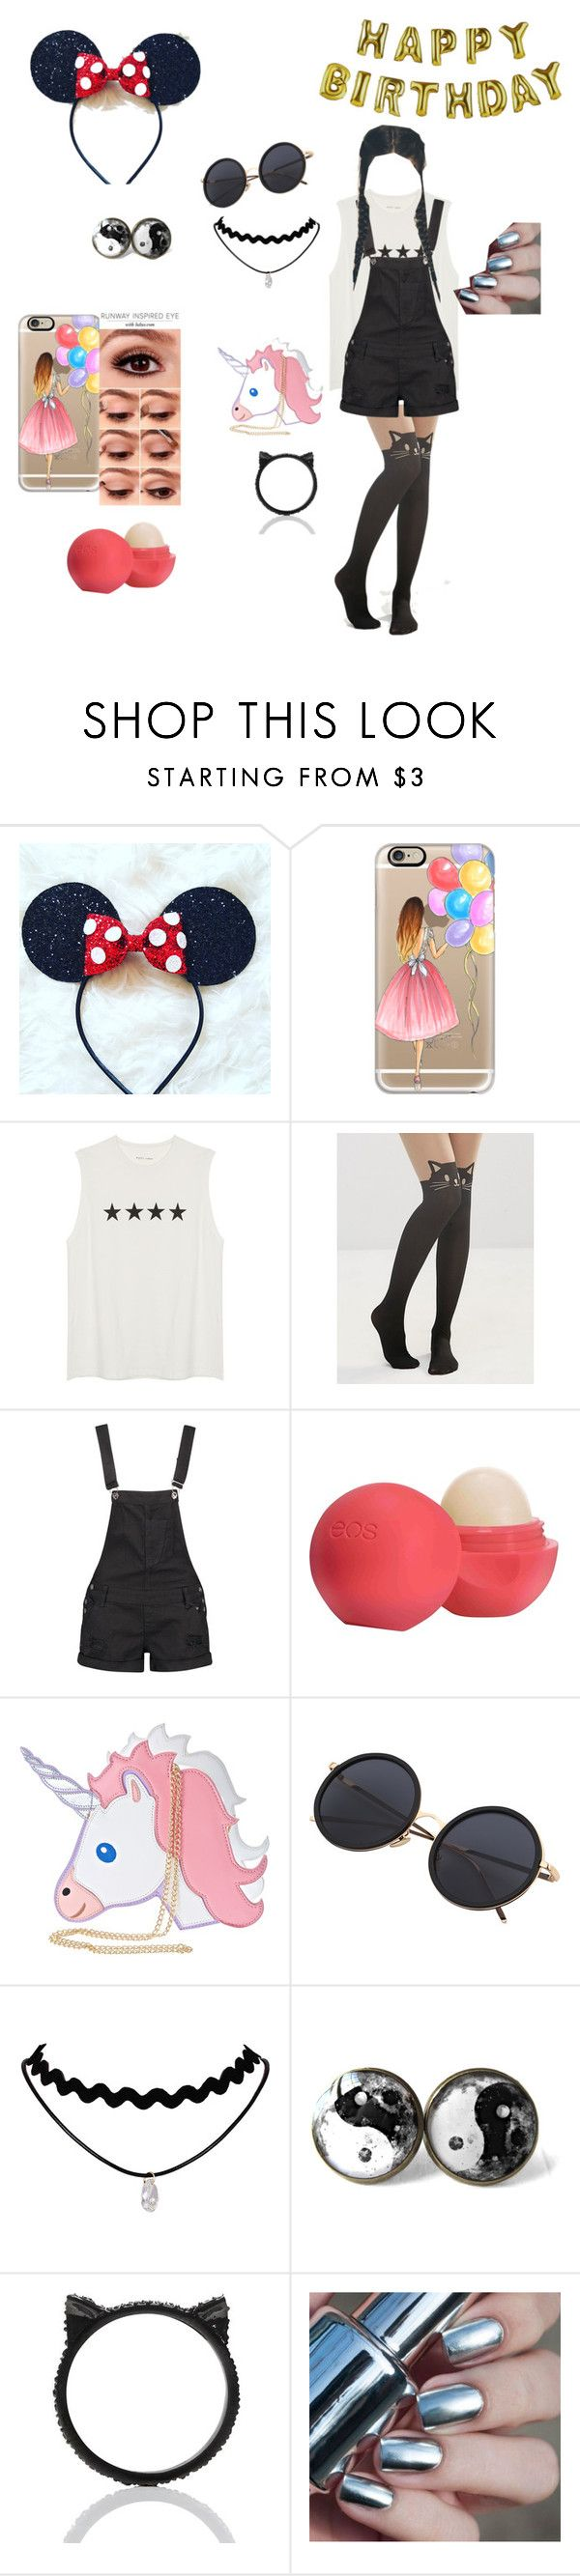 """HAPPY BIRTHDAY COURTNEY!"" by babycomics ❤ liked on Polyvore featuring Casetify, Talking Tables, Leg Avenue, Boohoo, Eos, Nila Anthony and Kate Spade"